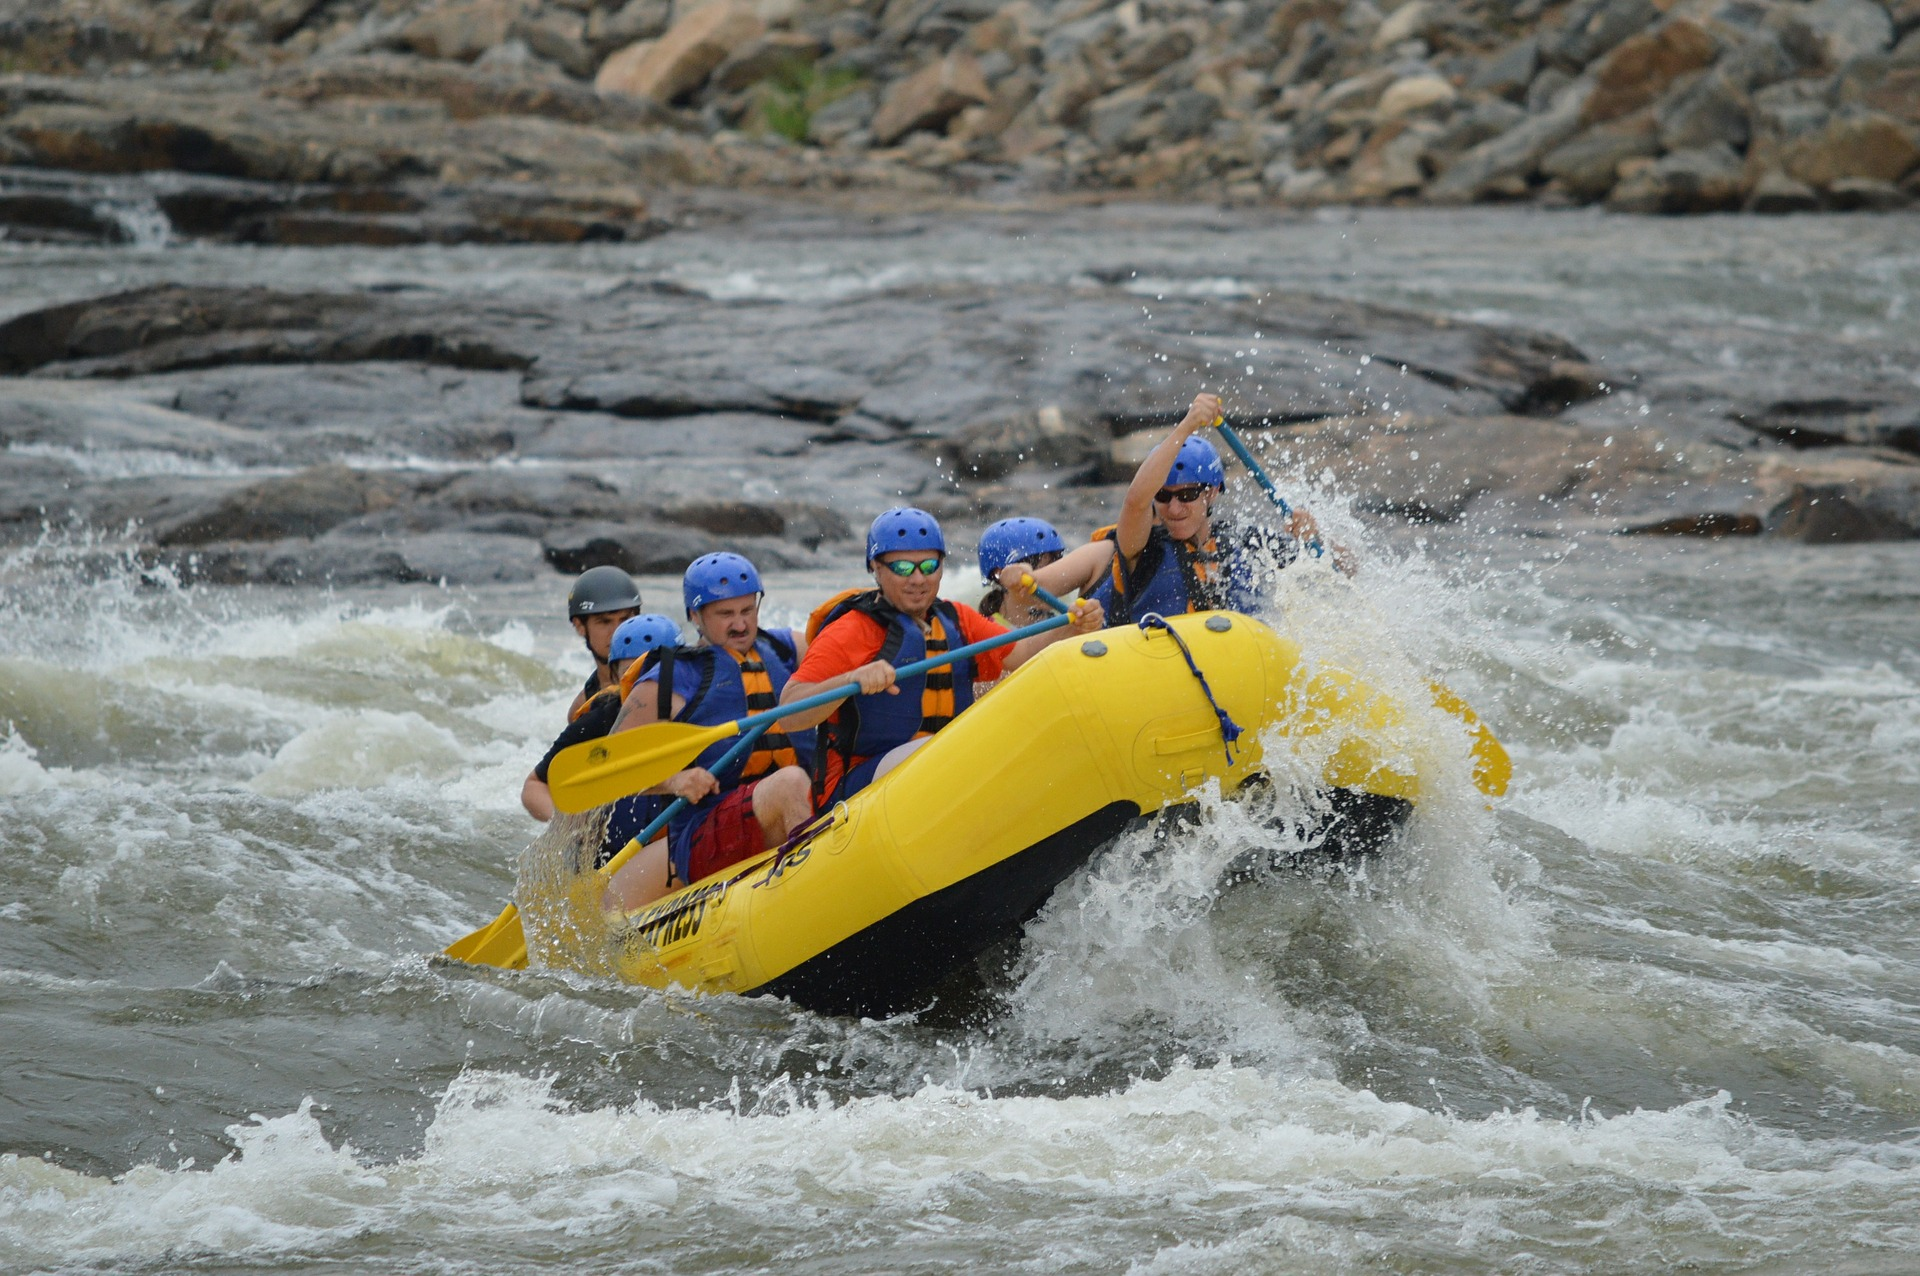 Partake in extreme Whitewater rafting